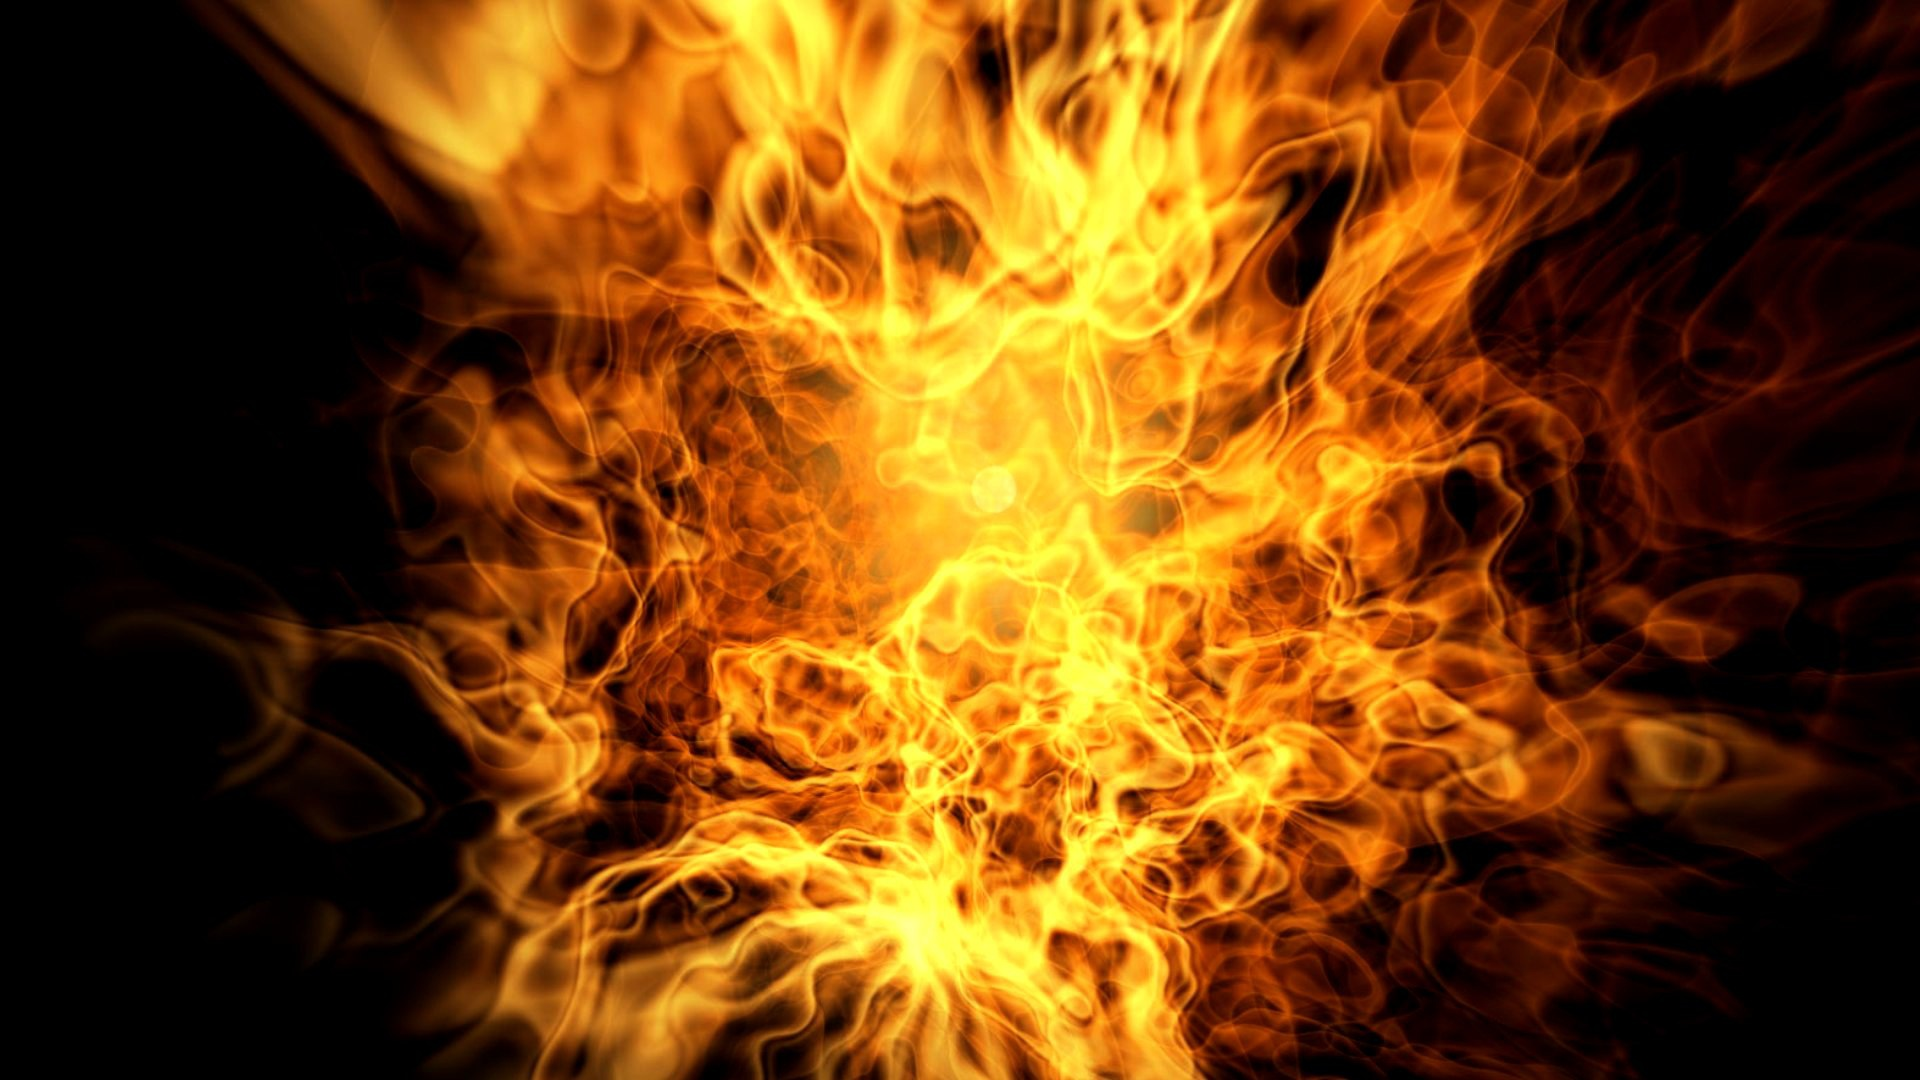 Fire Wallpapers, Backgrounds, Images, Pictures  Design Trends 1920x1080